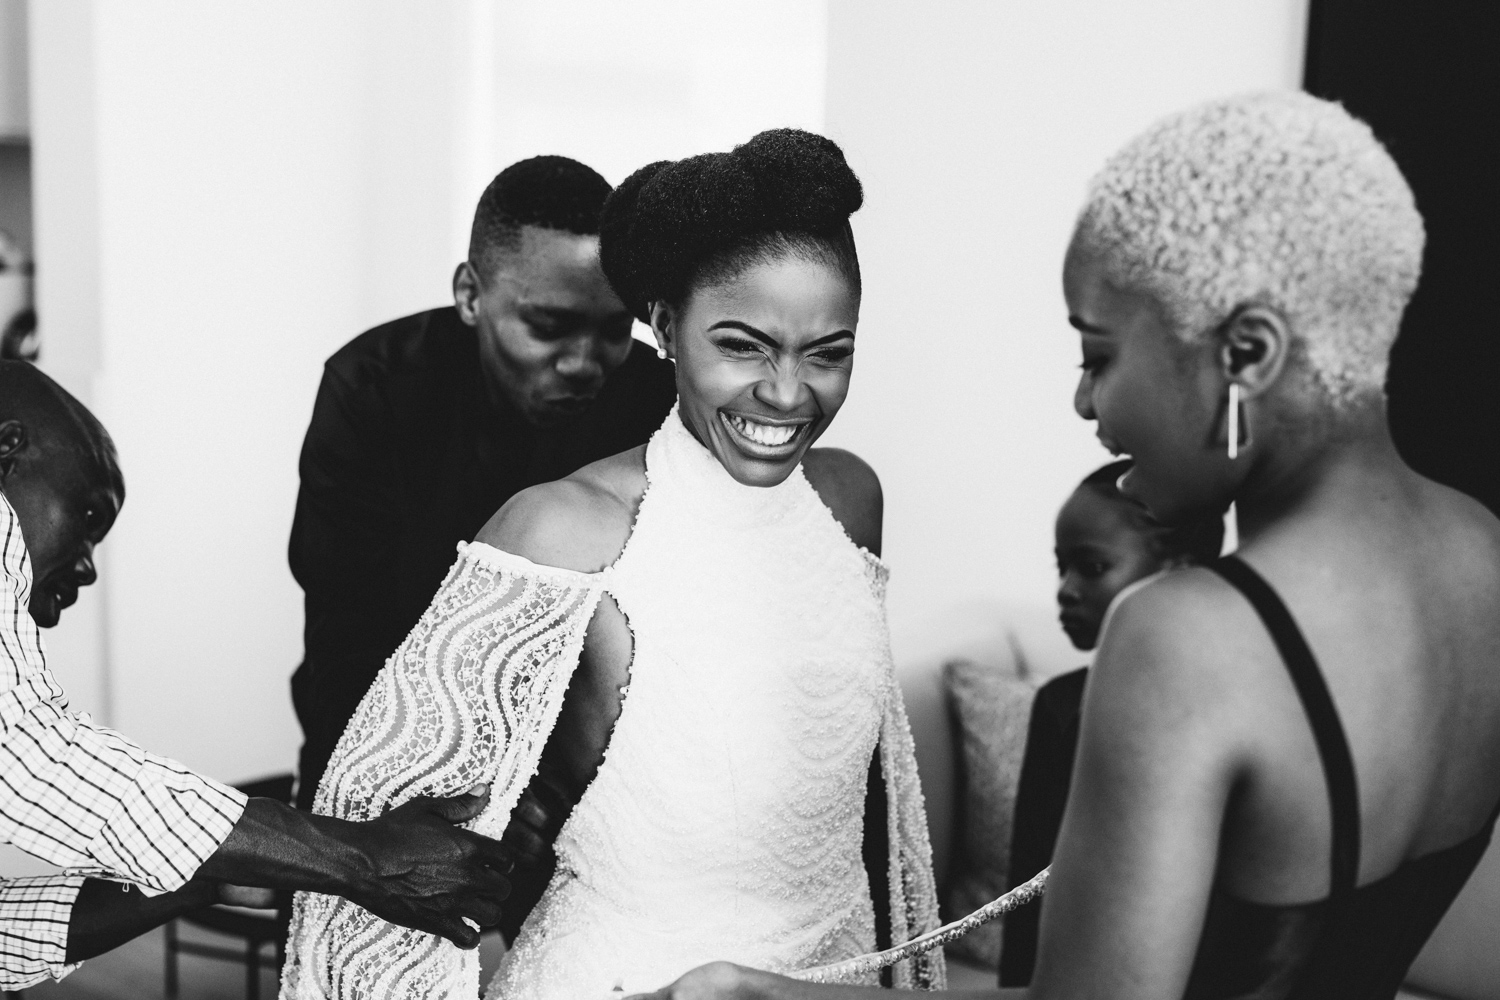 val de vie, Sindiswa & Lwazi – Val de Vie – Wedding – Sneak Peek, Vivid Blue Photography & Video, Vivid Blue Photography & Video